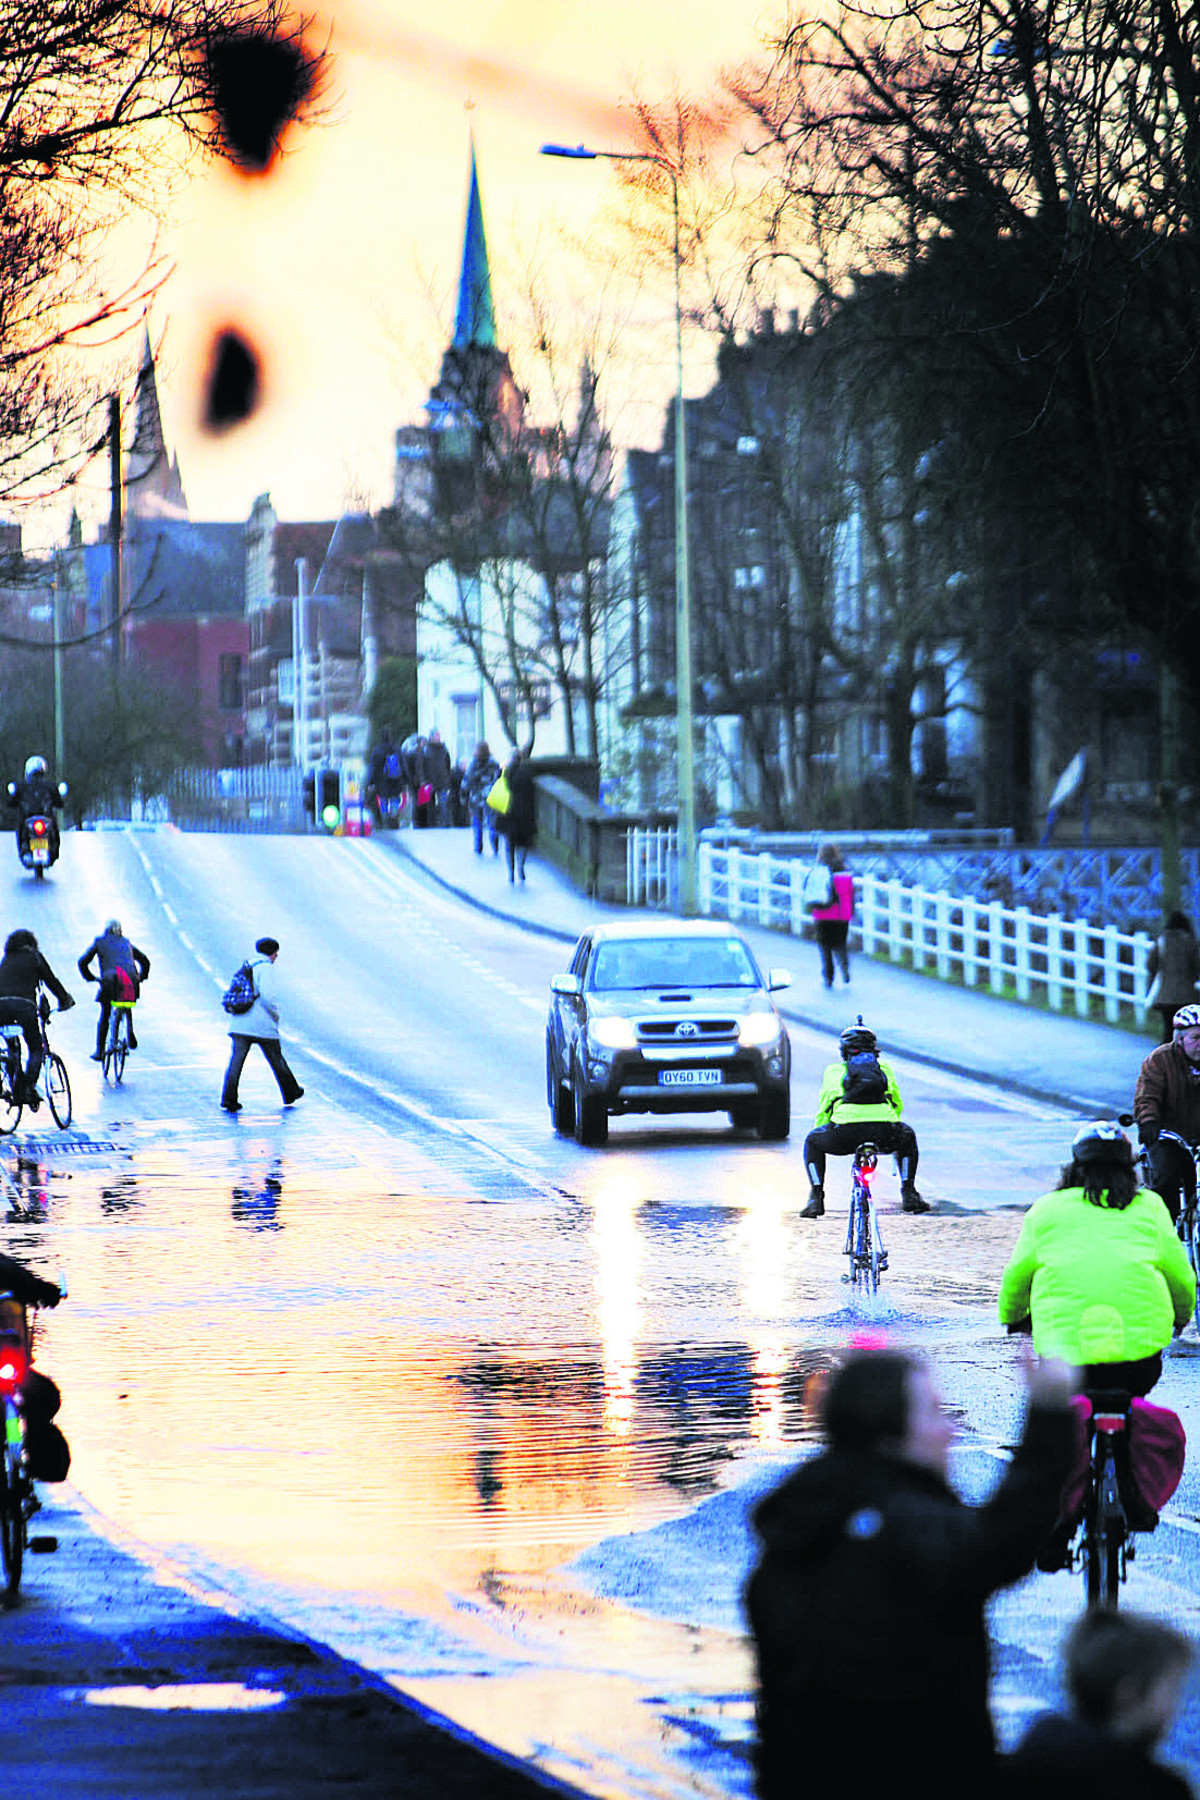 One of the few cars to brave Botley Road waits as a cyclist goes through the floods, legs held up to avoid a soaking